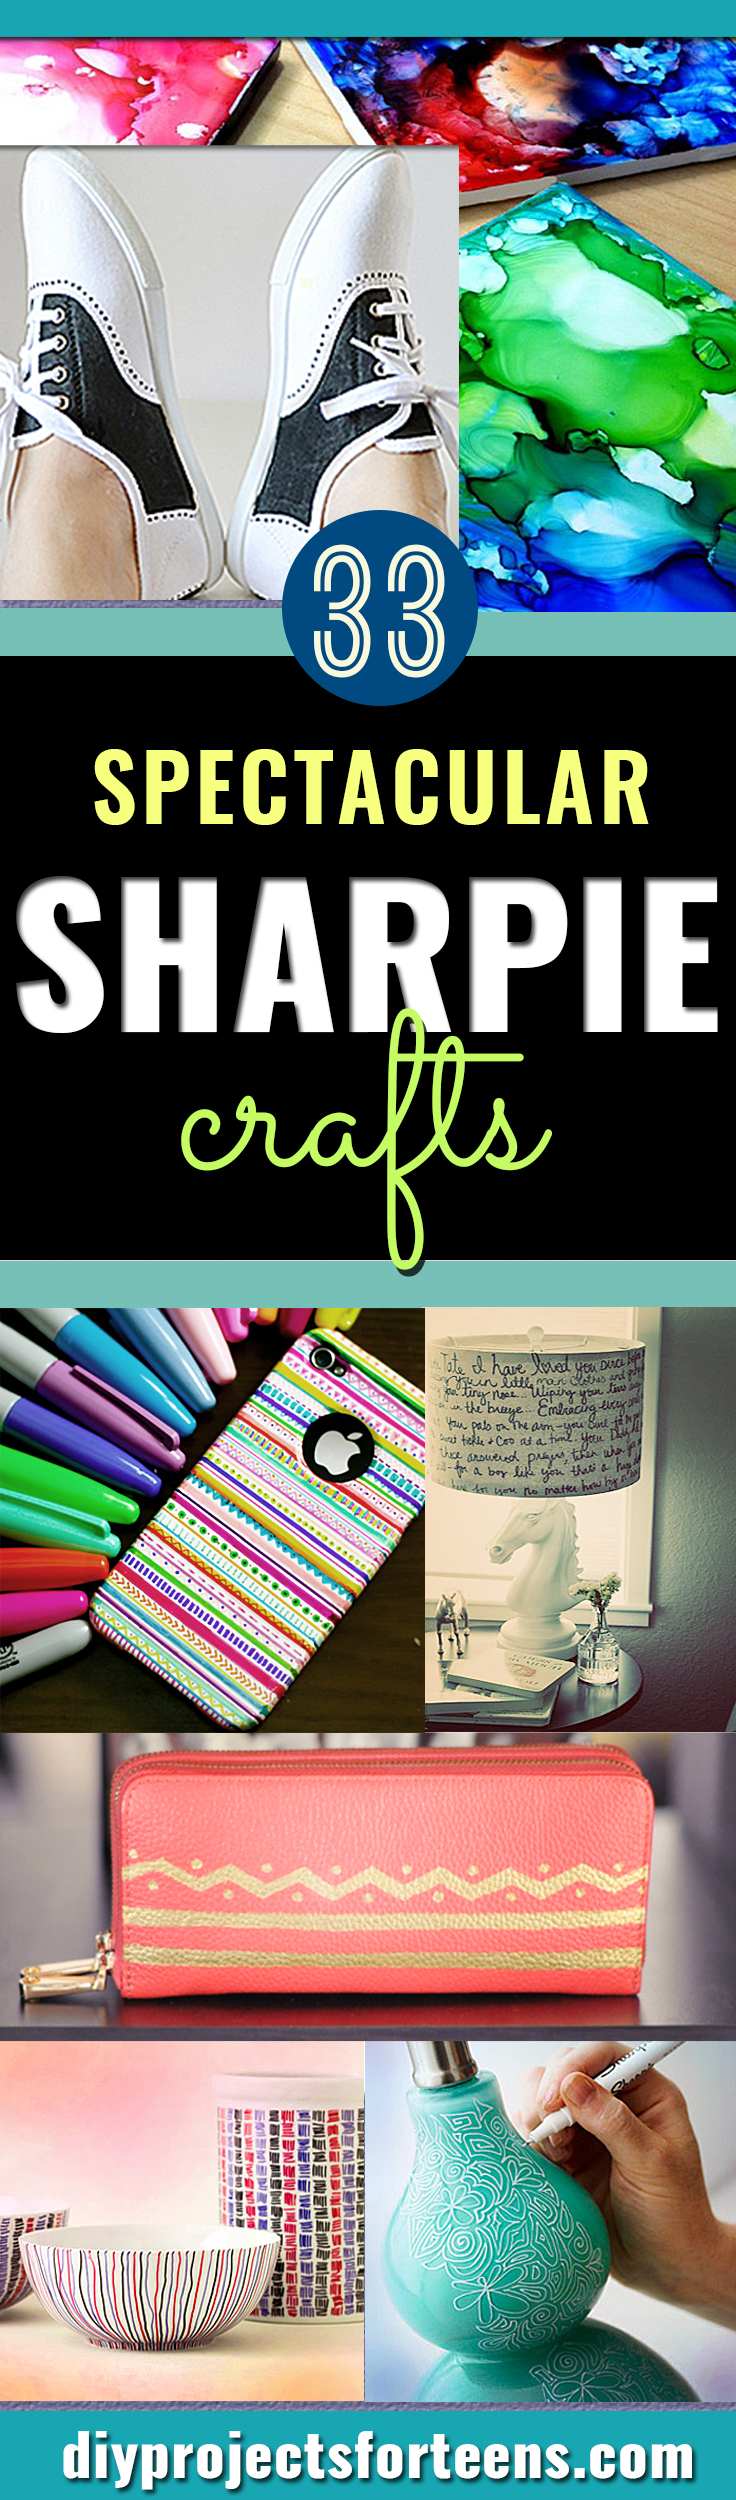 Cool Sharpie Crafts and Fun DIY Ideas with Sharpies. Awesome Decor and Fashion for Teens, Kids and Adults